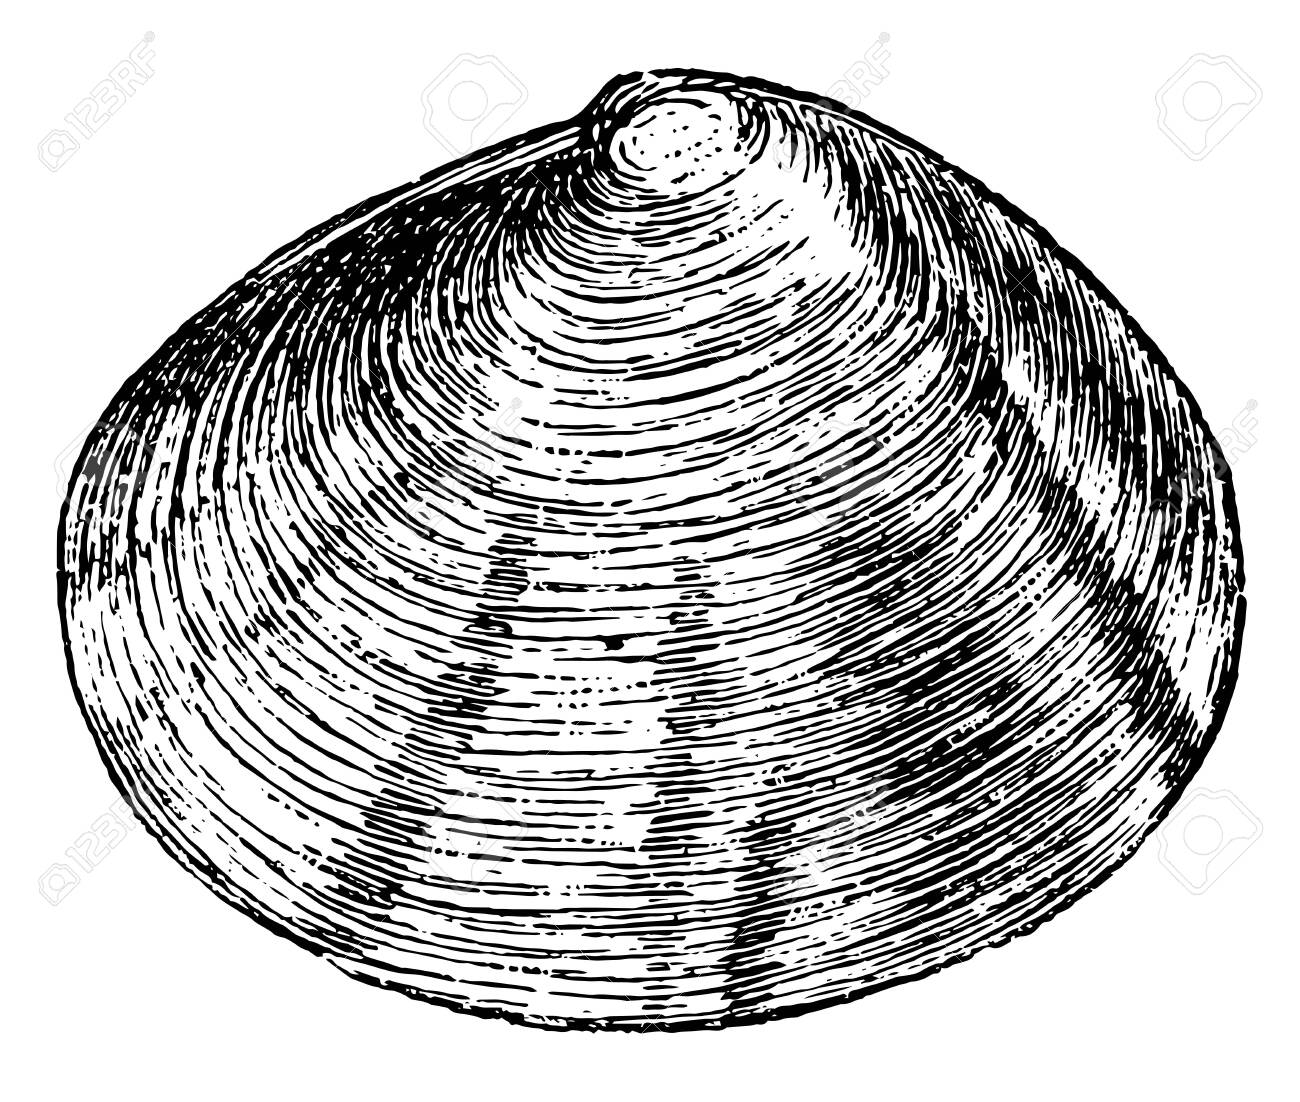 Tellina crassa is a widely distributed genus of marine bivalve molluscs, vintage line drawing or engraving illustration. - 133014601